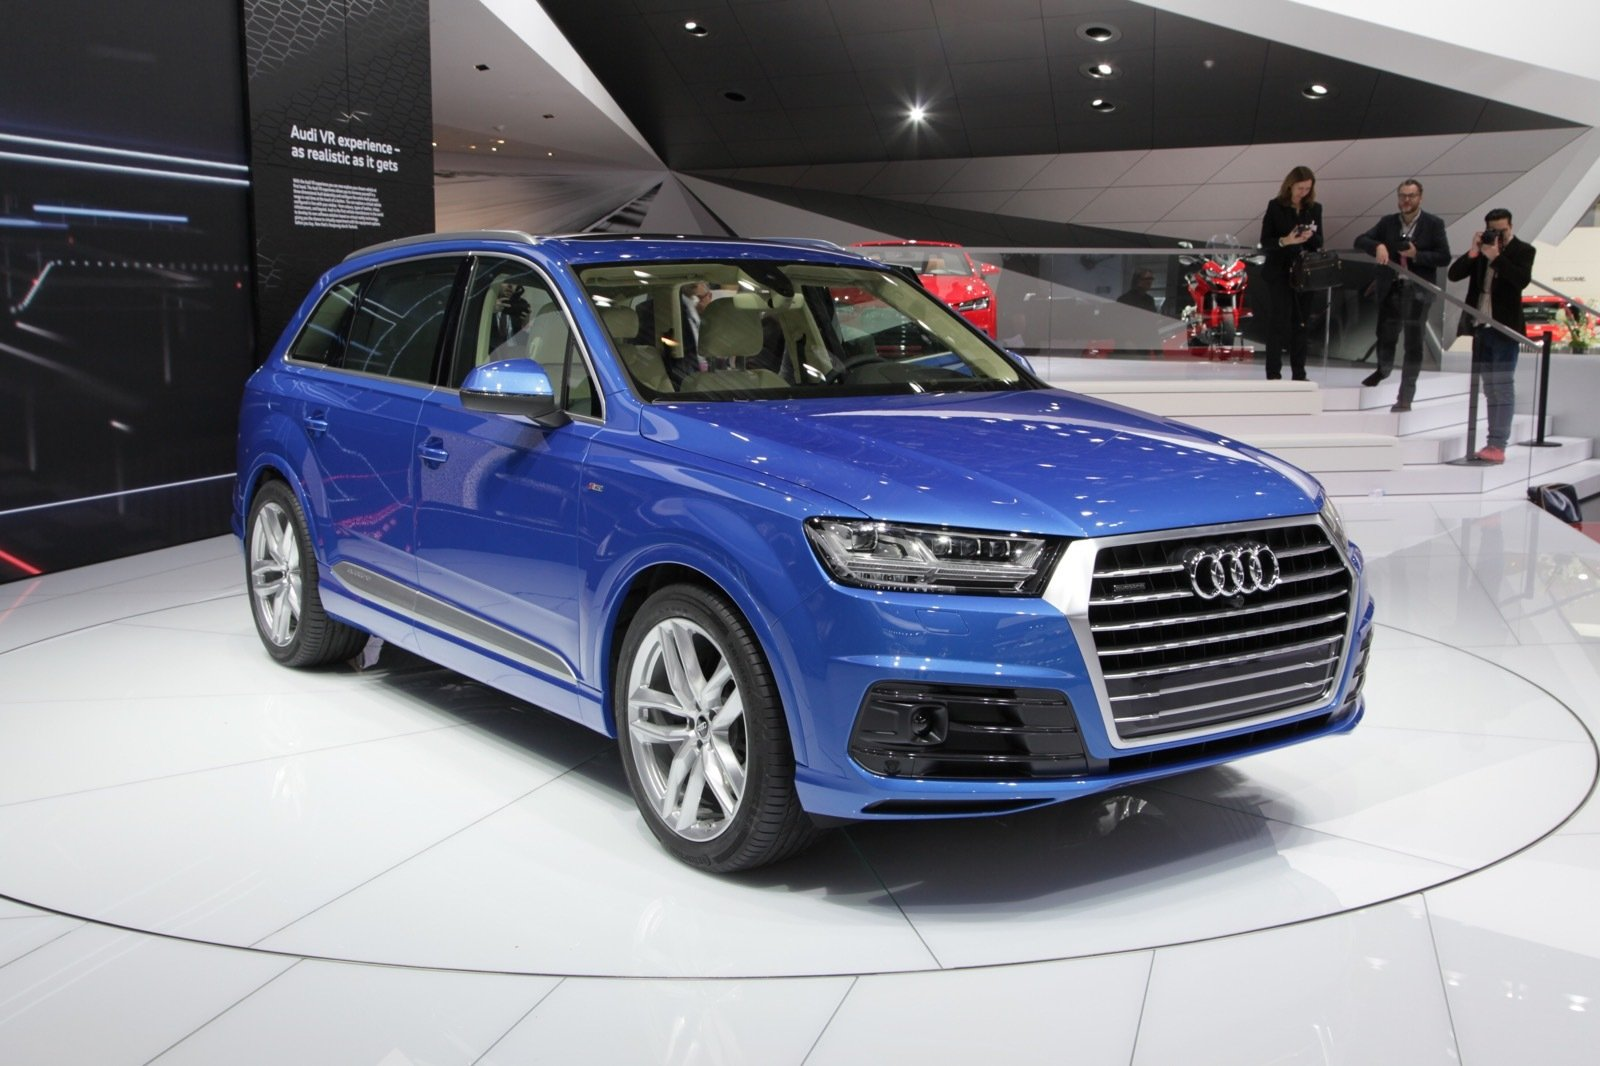 2016 audi q7 picture 610935 car review top speed. Black Bedroom Furniture Sets. Home Design Ideas